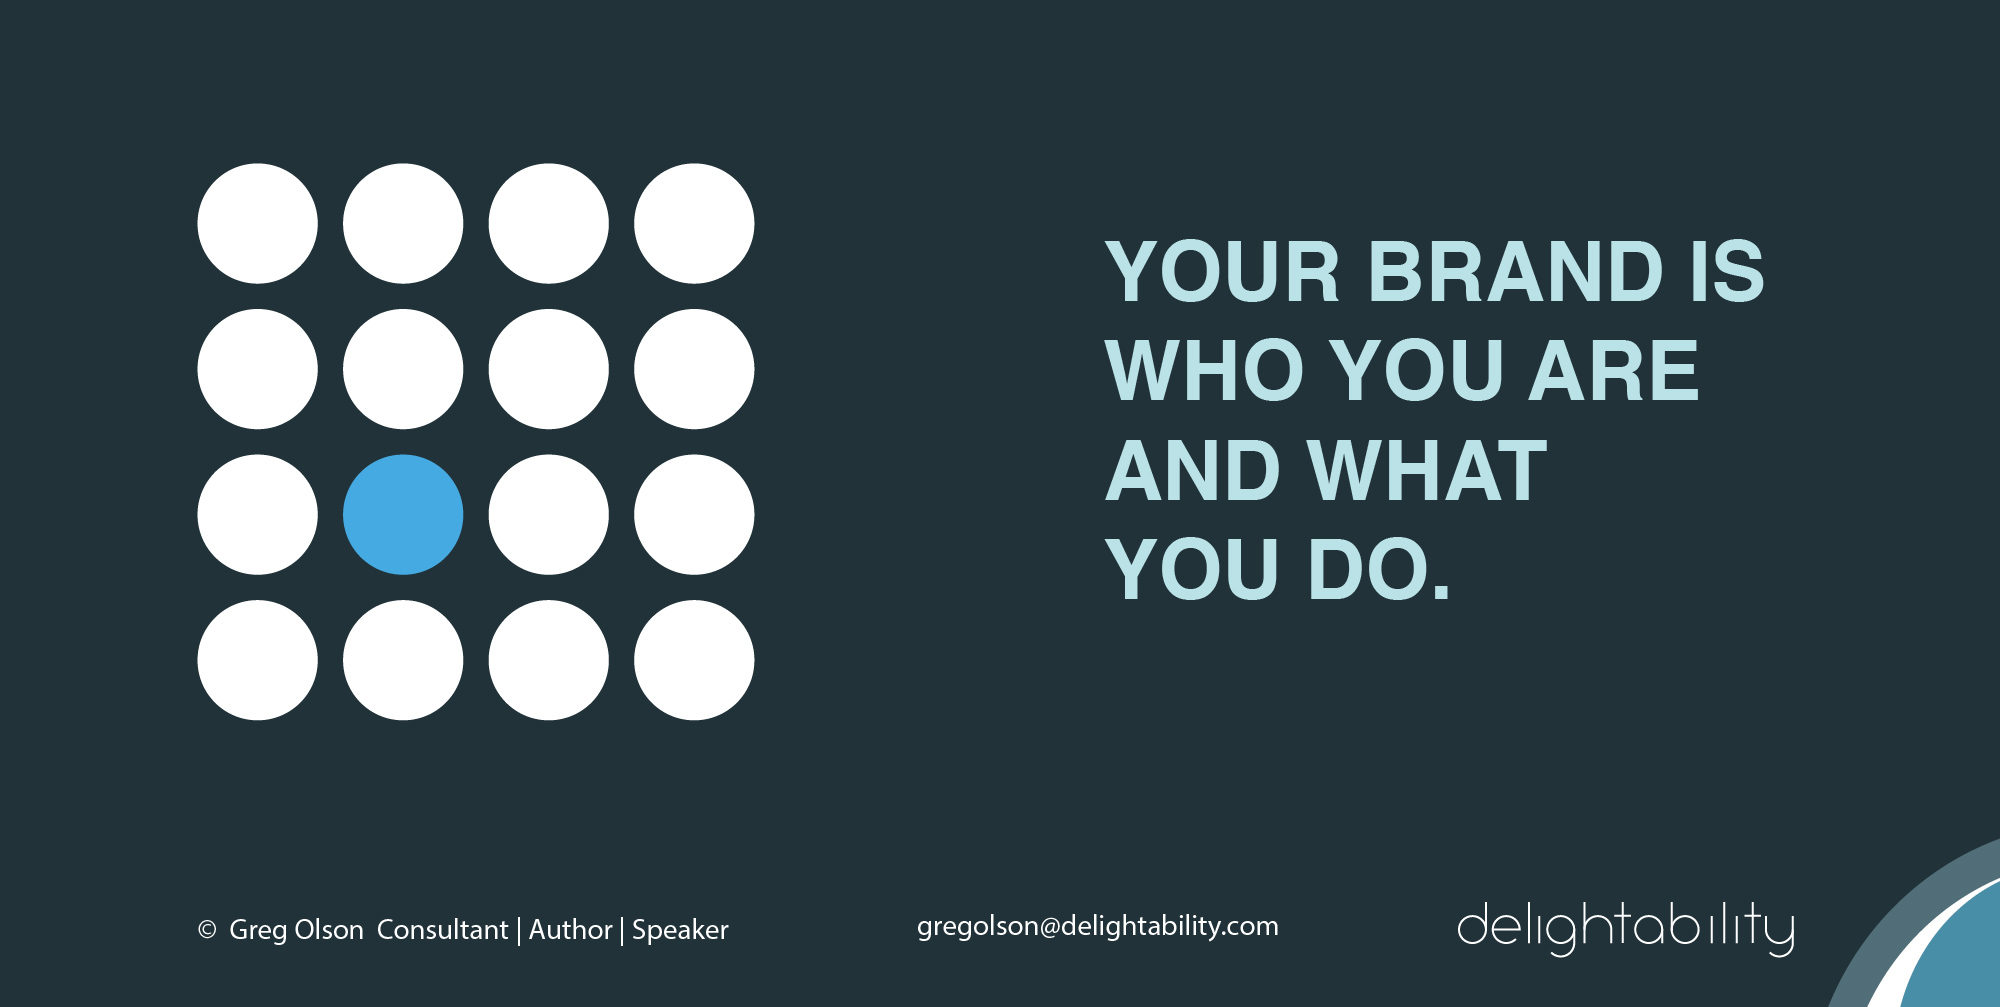 image of Brand Matters featured image for delightability blog post